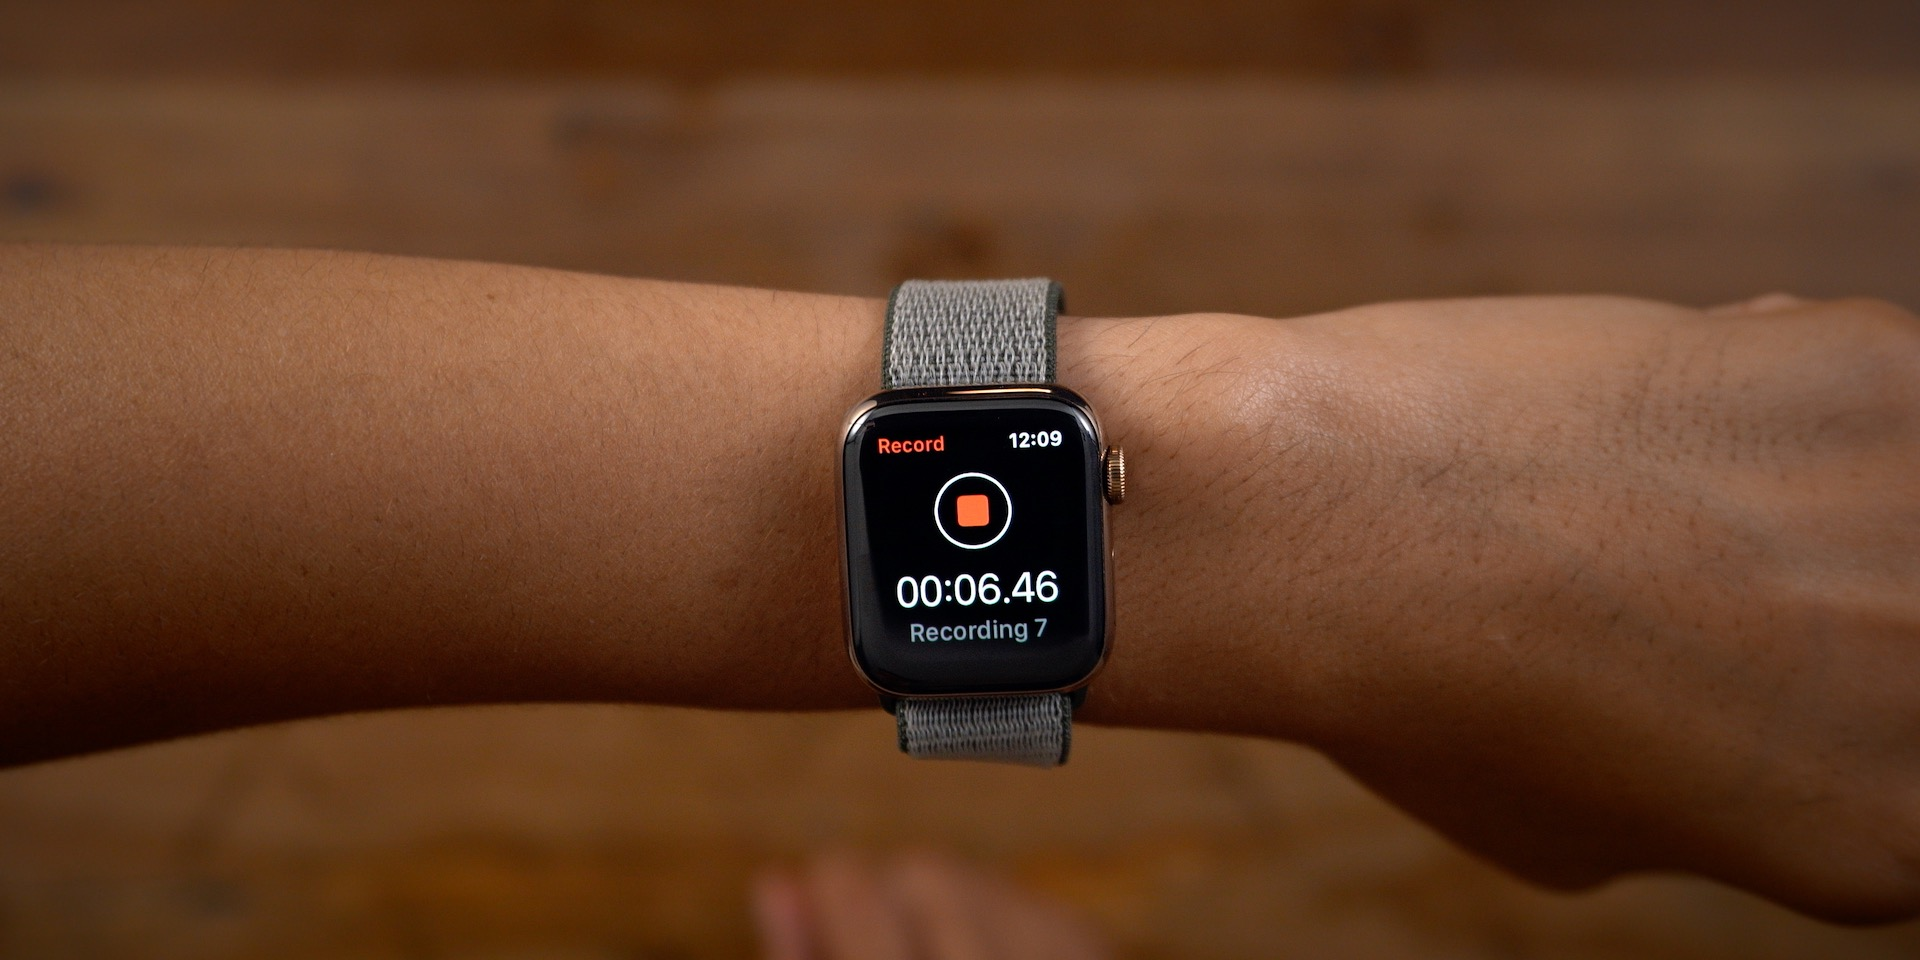 Apple releasing watchOS 6.1 to the public with Apple Watch Series 1 and  Series 2 support, more - 9to5Mac